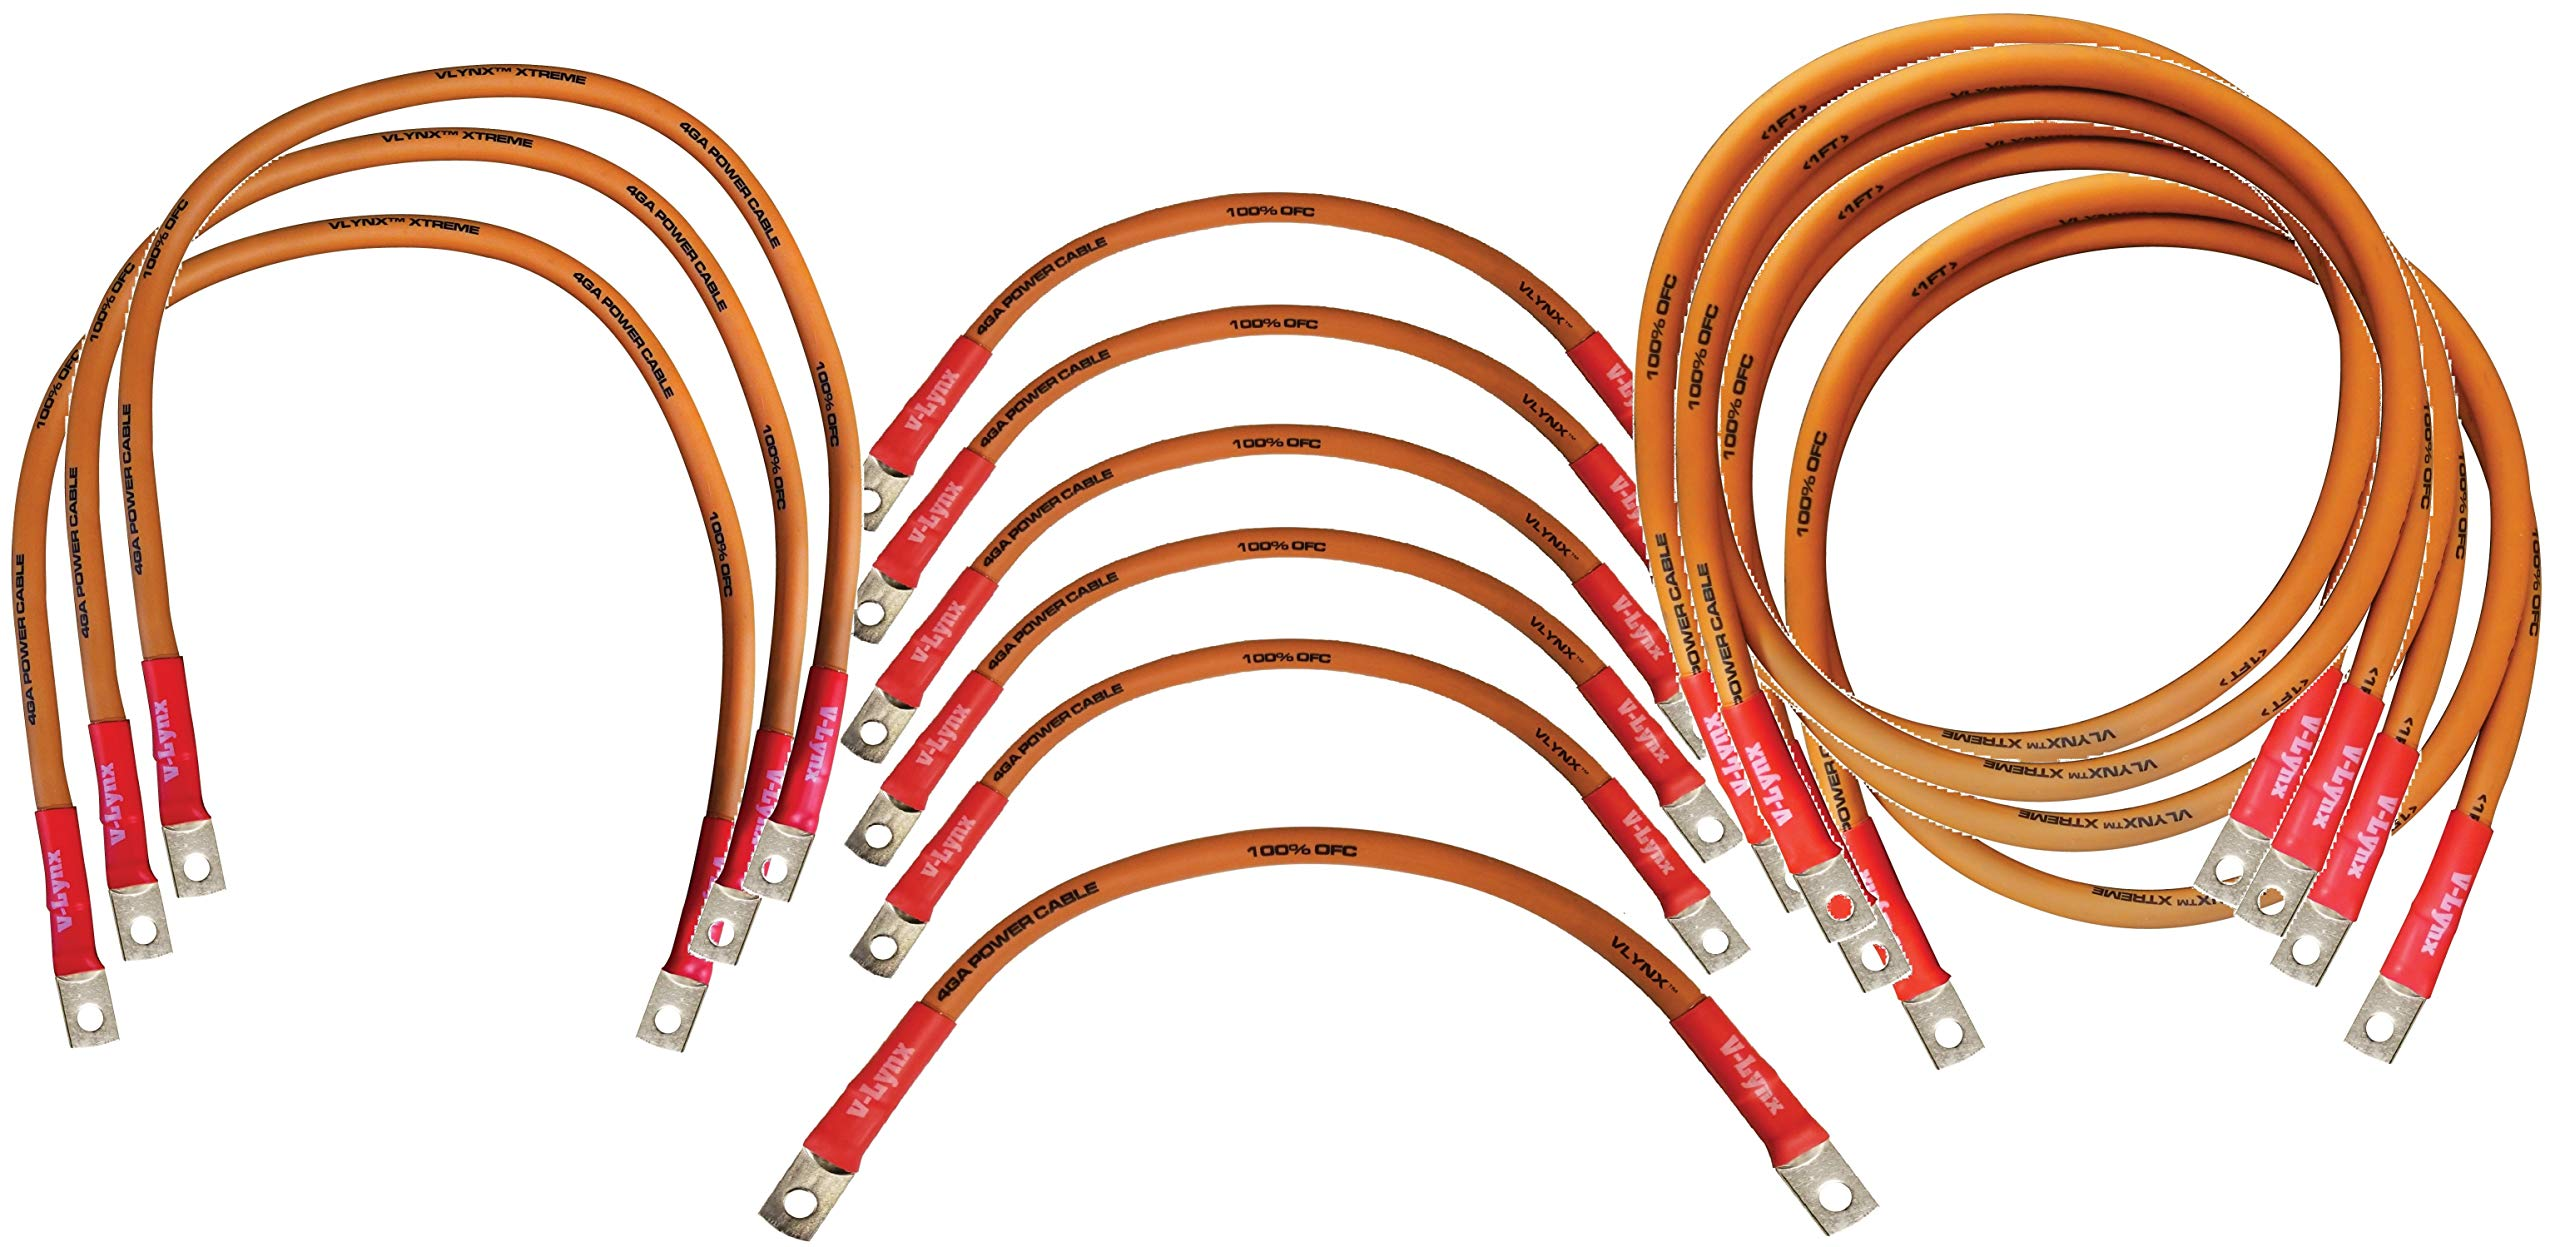 EZ GO TXT13 Golf Cart Battery Cable 13 Piece Kit 4-AWG (5)9''+(1)12''+(3)26''+(4)48'' 4 Gauge Battery Interconnect Link Cable 100% Copper with 5/16'' hole ring terminal ends and heat-shrink. MADE IN USA